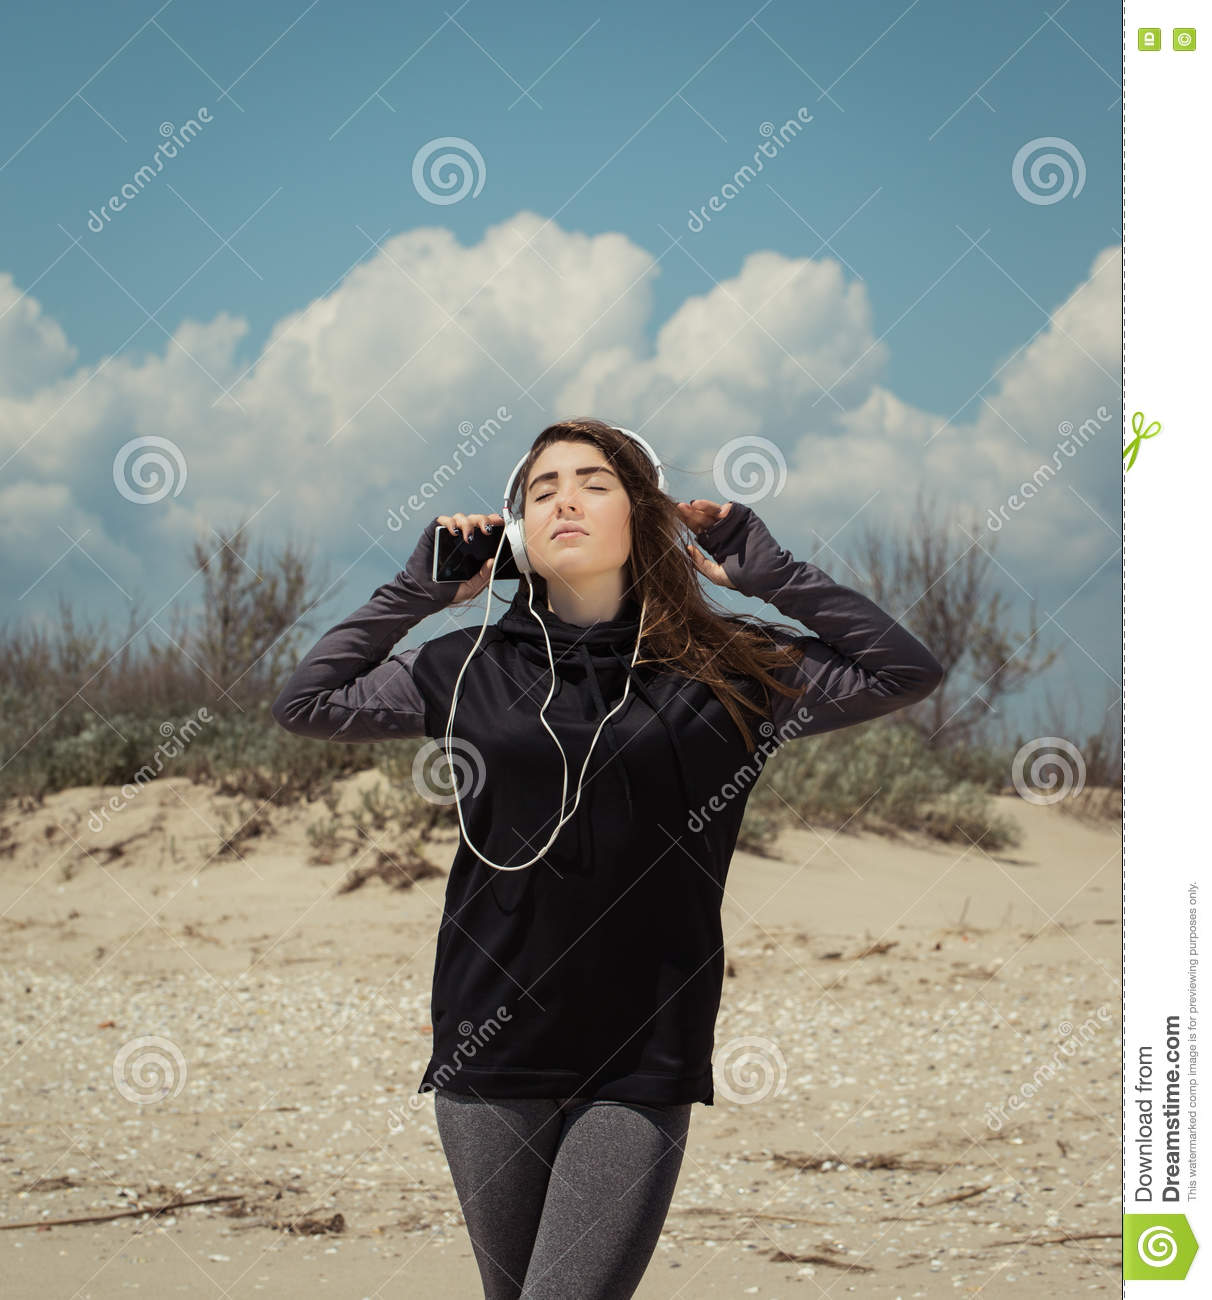 Pretty teenage girl with headphones listening to music